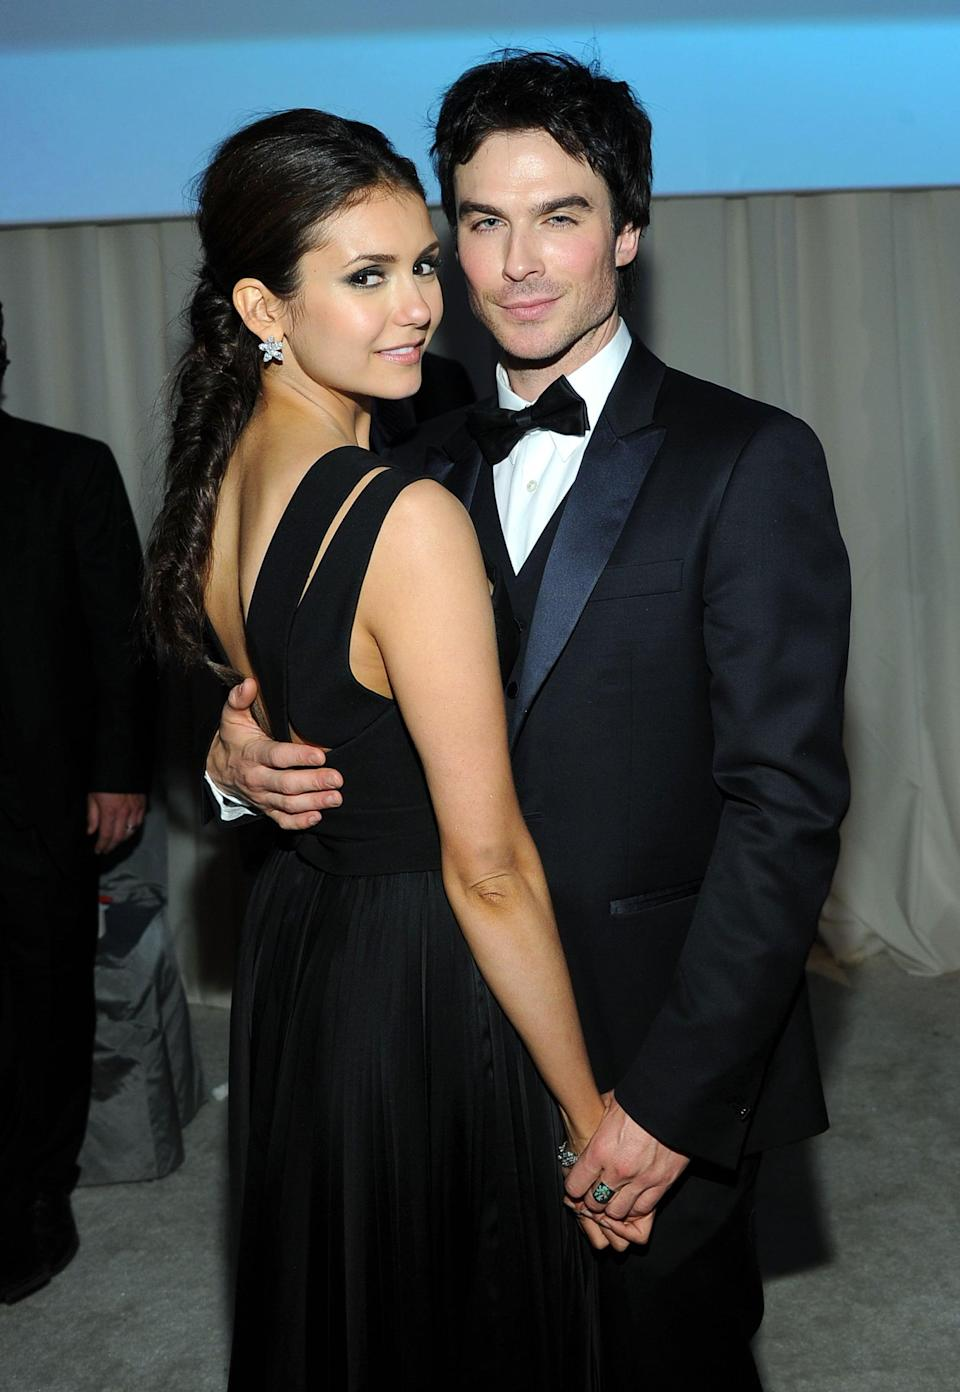 "<p>Nina and Ian met on the set of <strong>Vampire Diaries </strong>in 2009 - where they played on-and-off lovers Damon and Elena - and it wasn't long before the two started dating IRL. After their breakup in 2013, both actors remained on the series until its finale in 2017 (though in 2015, Nina went from a main cast member to a guest on the series).</p> <p>Even now, <a href=""http://www.eonline.com/news/655943/nina-dobrev-breaks-silence-on-ian-somerhalder-s-beautiful-wedding"" class=""link rapid-noclick-resp"" rel=""nofollow noopener"" target=""_blank"" data-ylk=""slk:the actors remain close friends"">the actors remain close friends</a>. As Nina told <strong>E! News</strong> in May 2015, ""I've said this before, that we didn't break up because anything bad happened or because there wasn't love or friendship. I love him and the friendship is still strong and I think he's great and I care about him. And that didn't change. Yes, we're professional and that's fine. We were friends long before we dated and we still are now.""</p> <p><a href=""http://www.eonline.com/news/498049/nina-dobrev-talks-people-s-choice-moment-with-ian-somerhalder-it-was-just-honest"" class=""link rapid-noclick-resp"" rel=""nofollow noopener"" target=""_blank"" data-ylk=""slk:The two even hilariously addressed their split"">The two even hilariously addressed their split</a> onstage after winning the best chemistry award at the 2014 People's Choice Awards. Of the moment, Nina told <strong>E! News</strong>, ""I was trying to figure out, like what do you say in that situation? We were like, well, we're cool, we're friends and costars. He's a great person, I'm a great person . . . I mean, I think I'm pretty awesome. So it doesn't need to be awkward and I think everyone expected it to be so awkward. We made fun of ourselves and just had fun.""</p>"